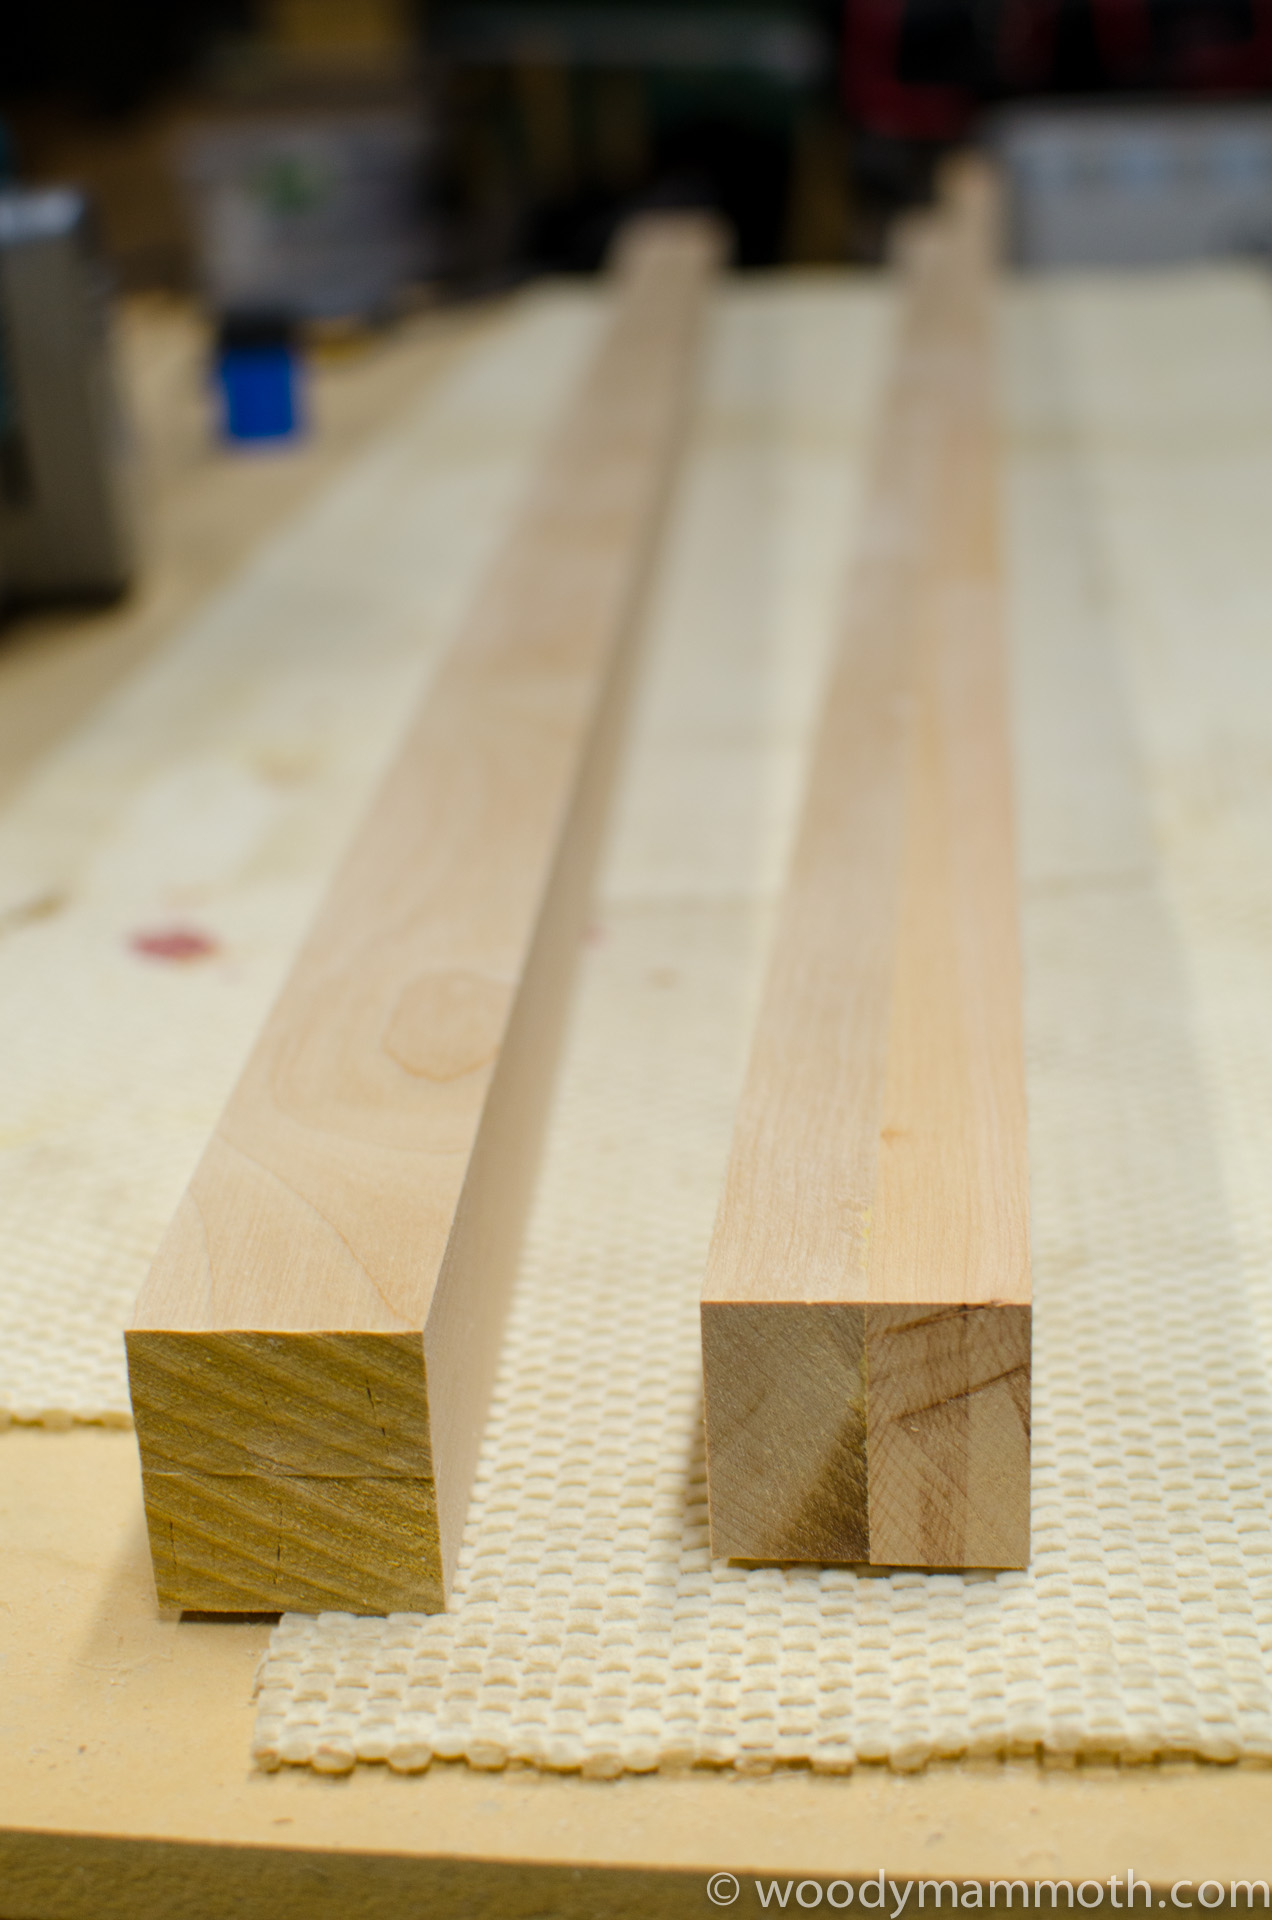 Laminated birch for spacers